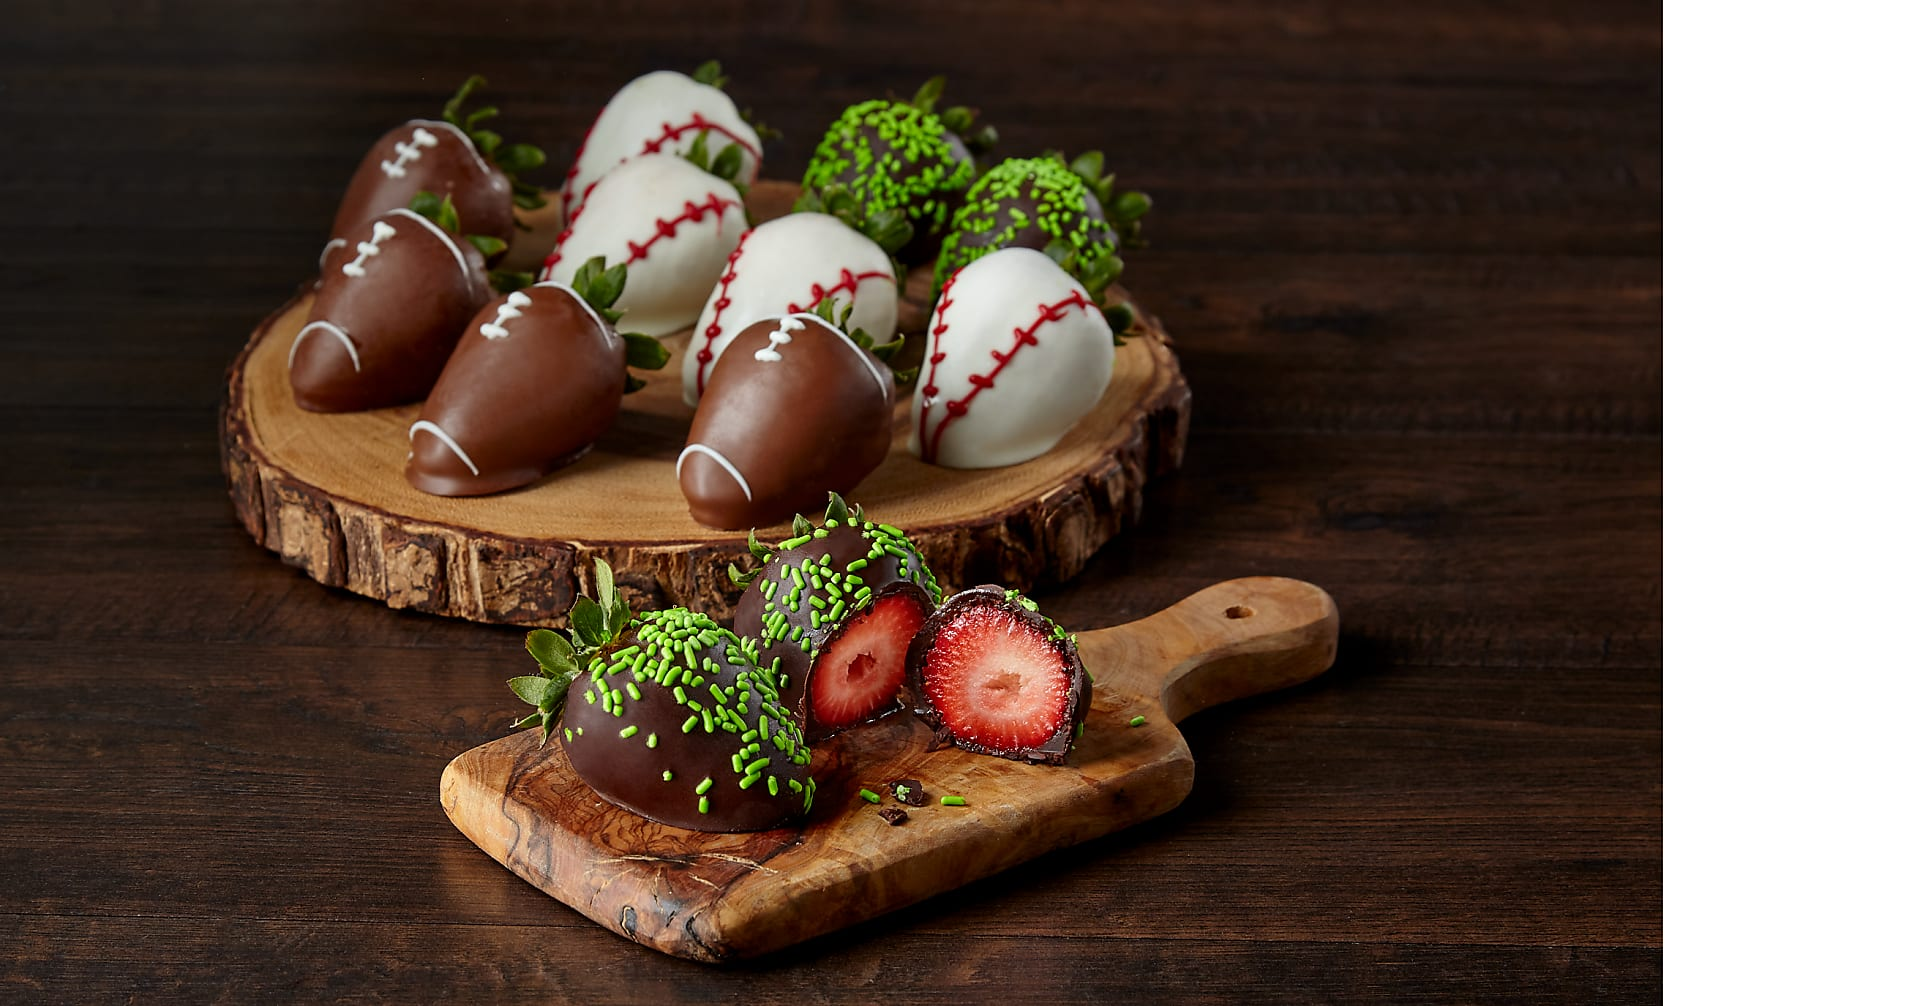 One Dozen Belgian Chocolate Covered Strawberries for Dad - Image 1 Of 2